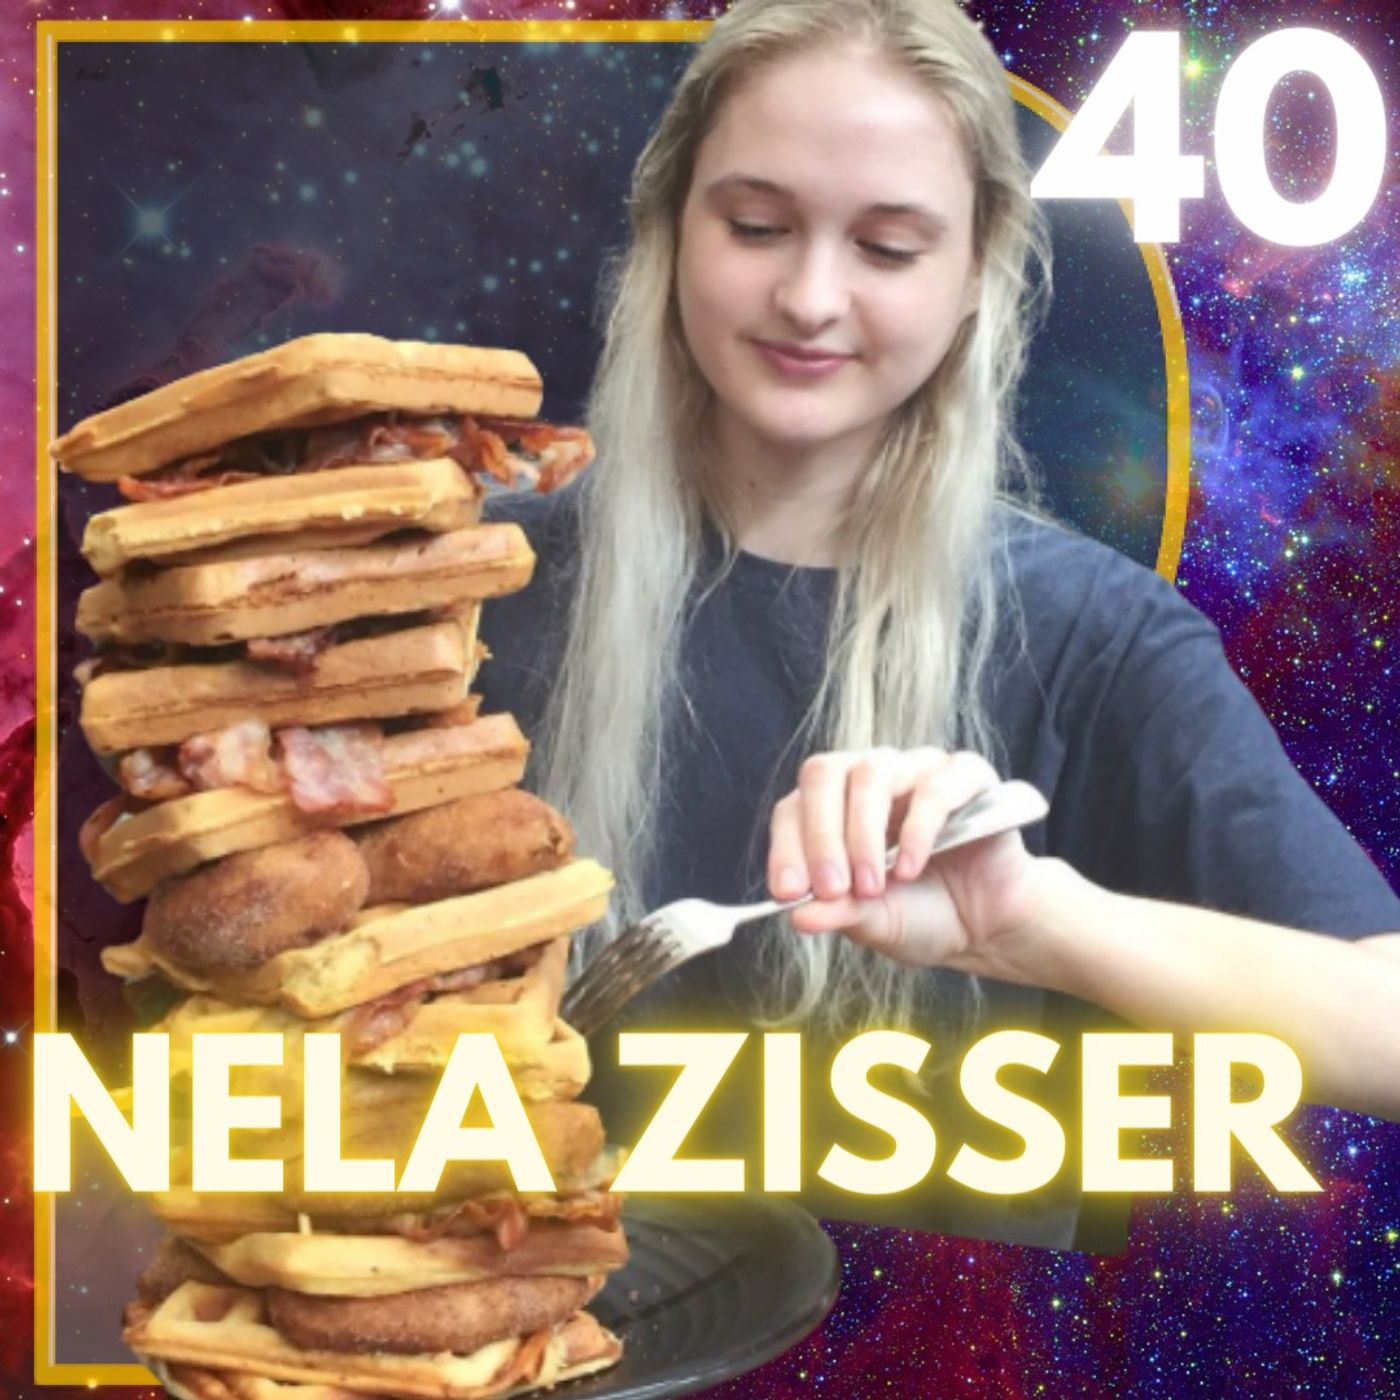 Speed Eating on Youtube with Nela Zisser